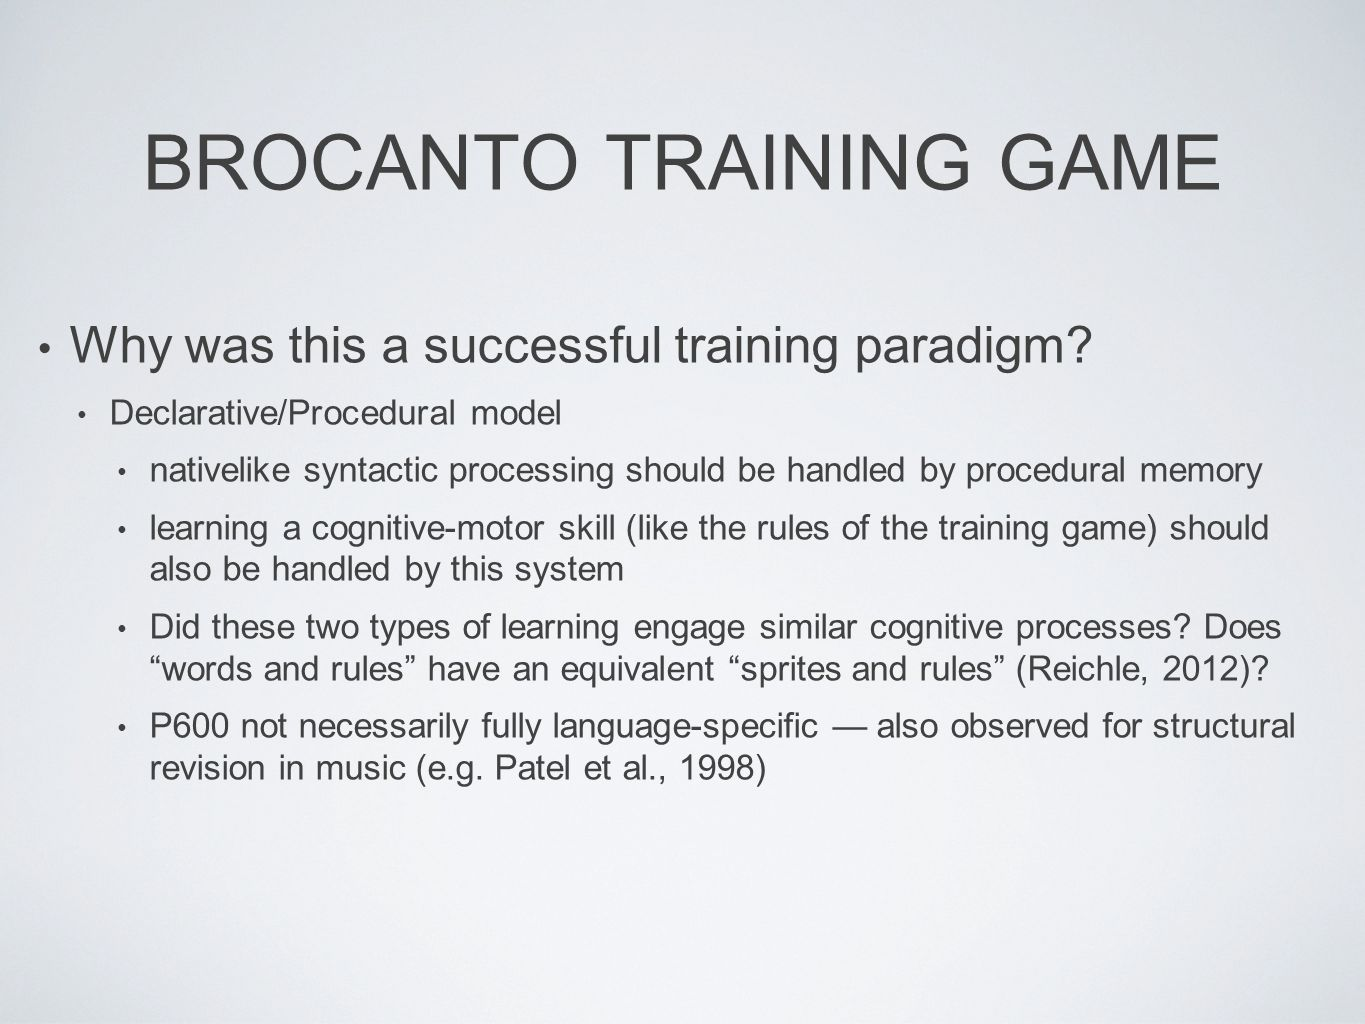 BROCANTO TRAINING GAME Why was this a successful training paradigm? Declarative/Procedural model nativelike syntactic processing should be handled by